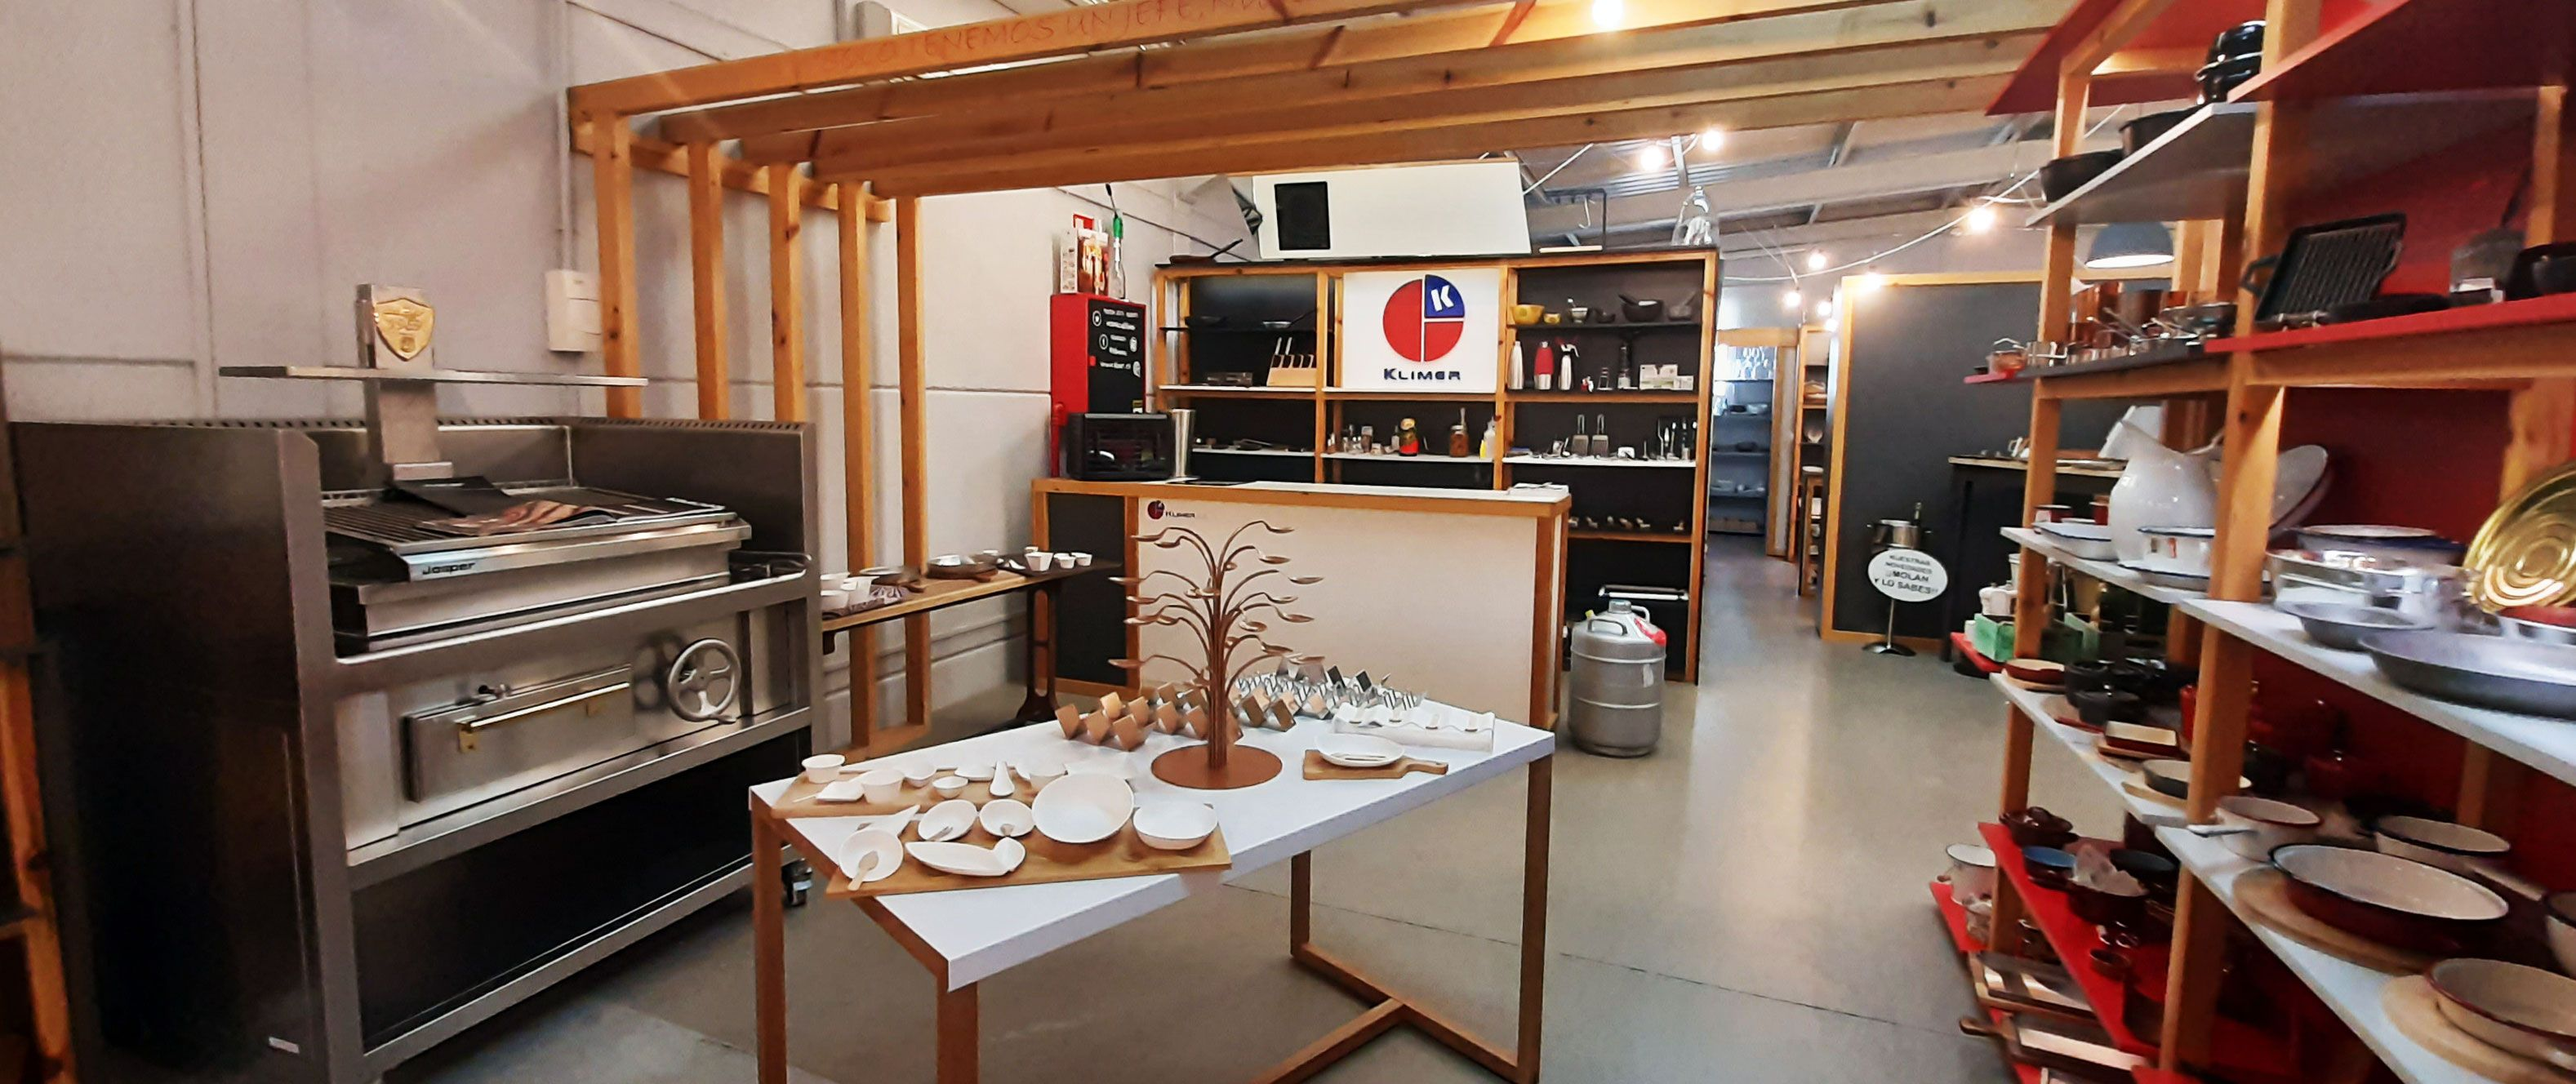 Showroom Klimer - catering y hostelería